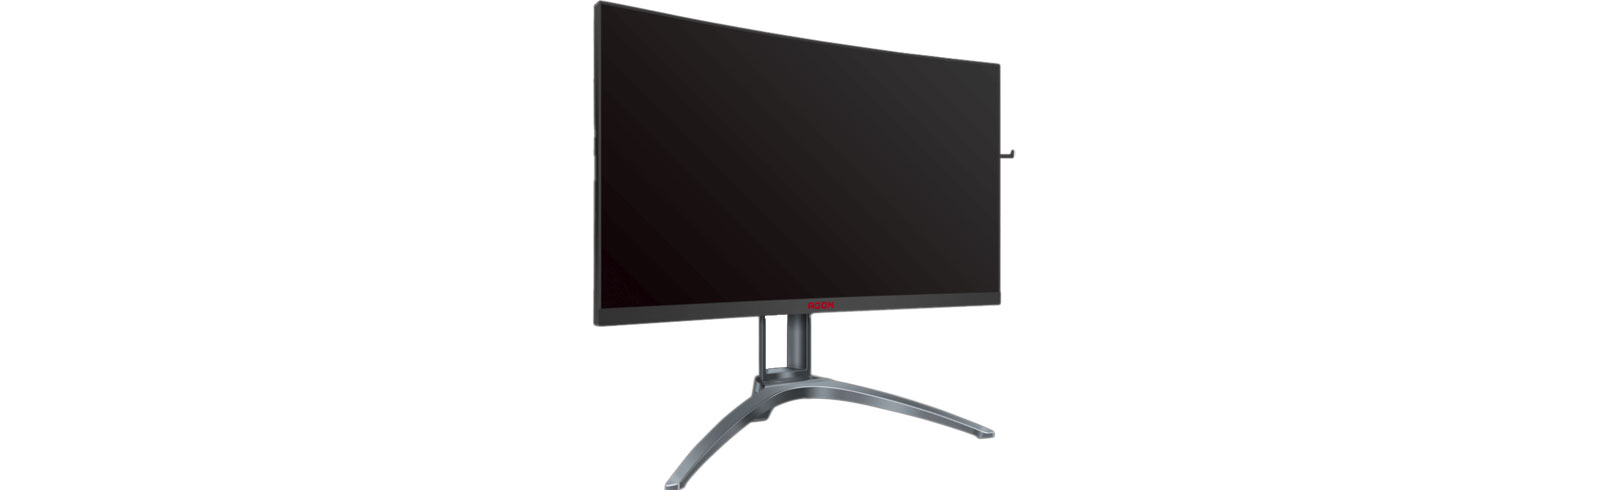 The AOC AGON AG273QCX2 gaming monitor goes on sale in Asia for USD 531